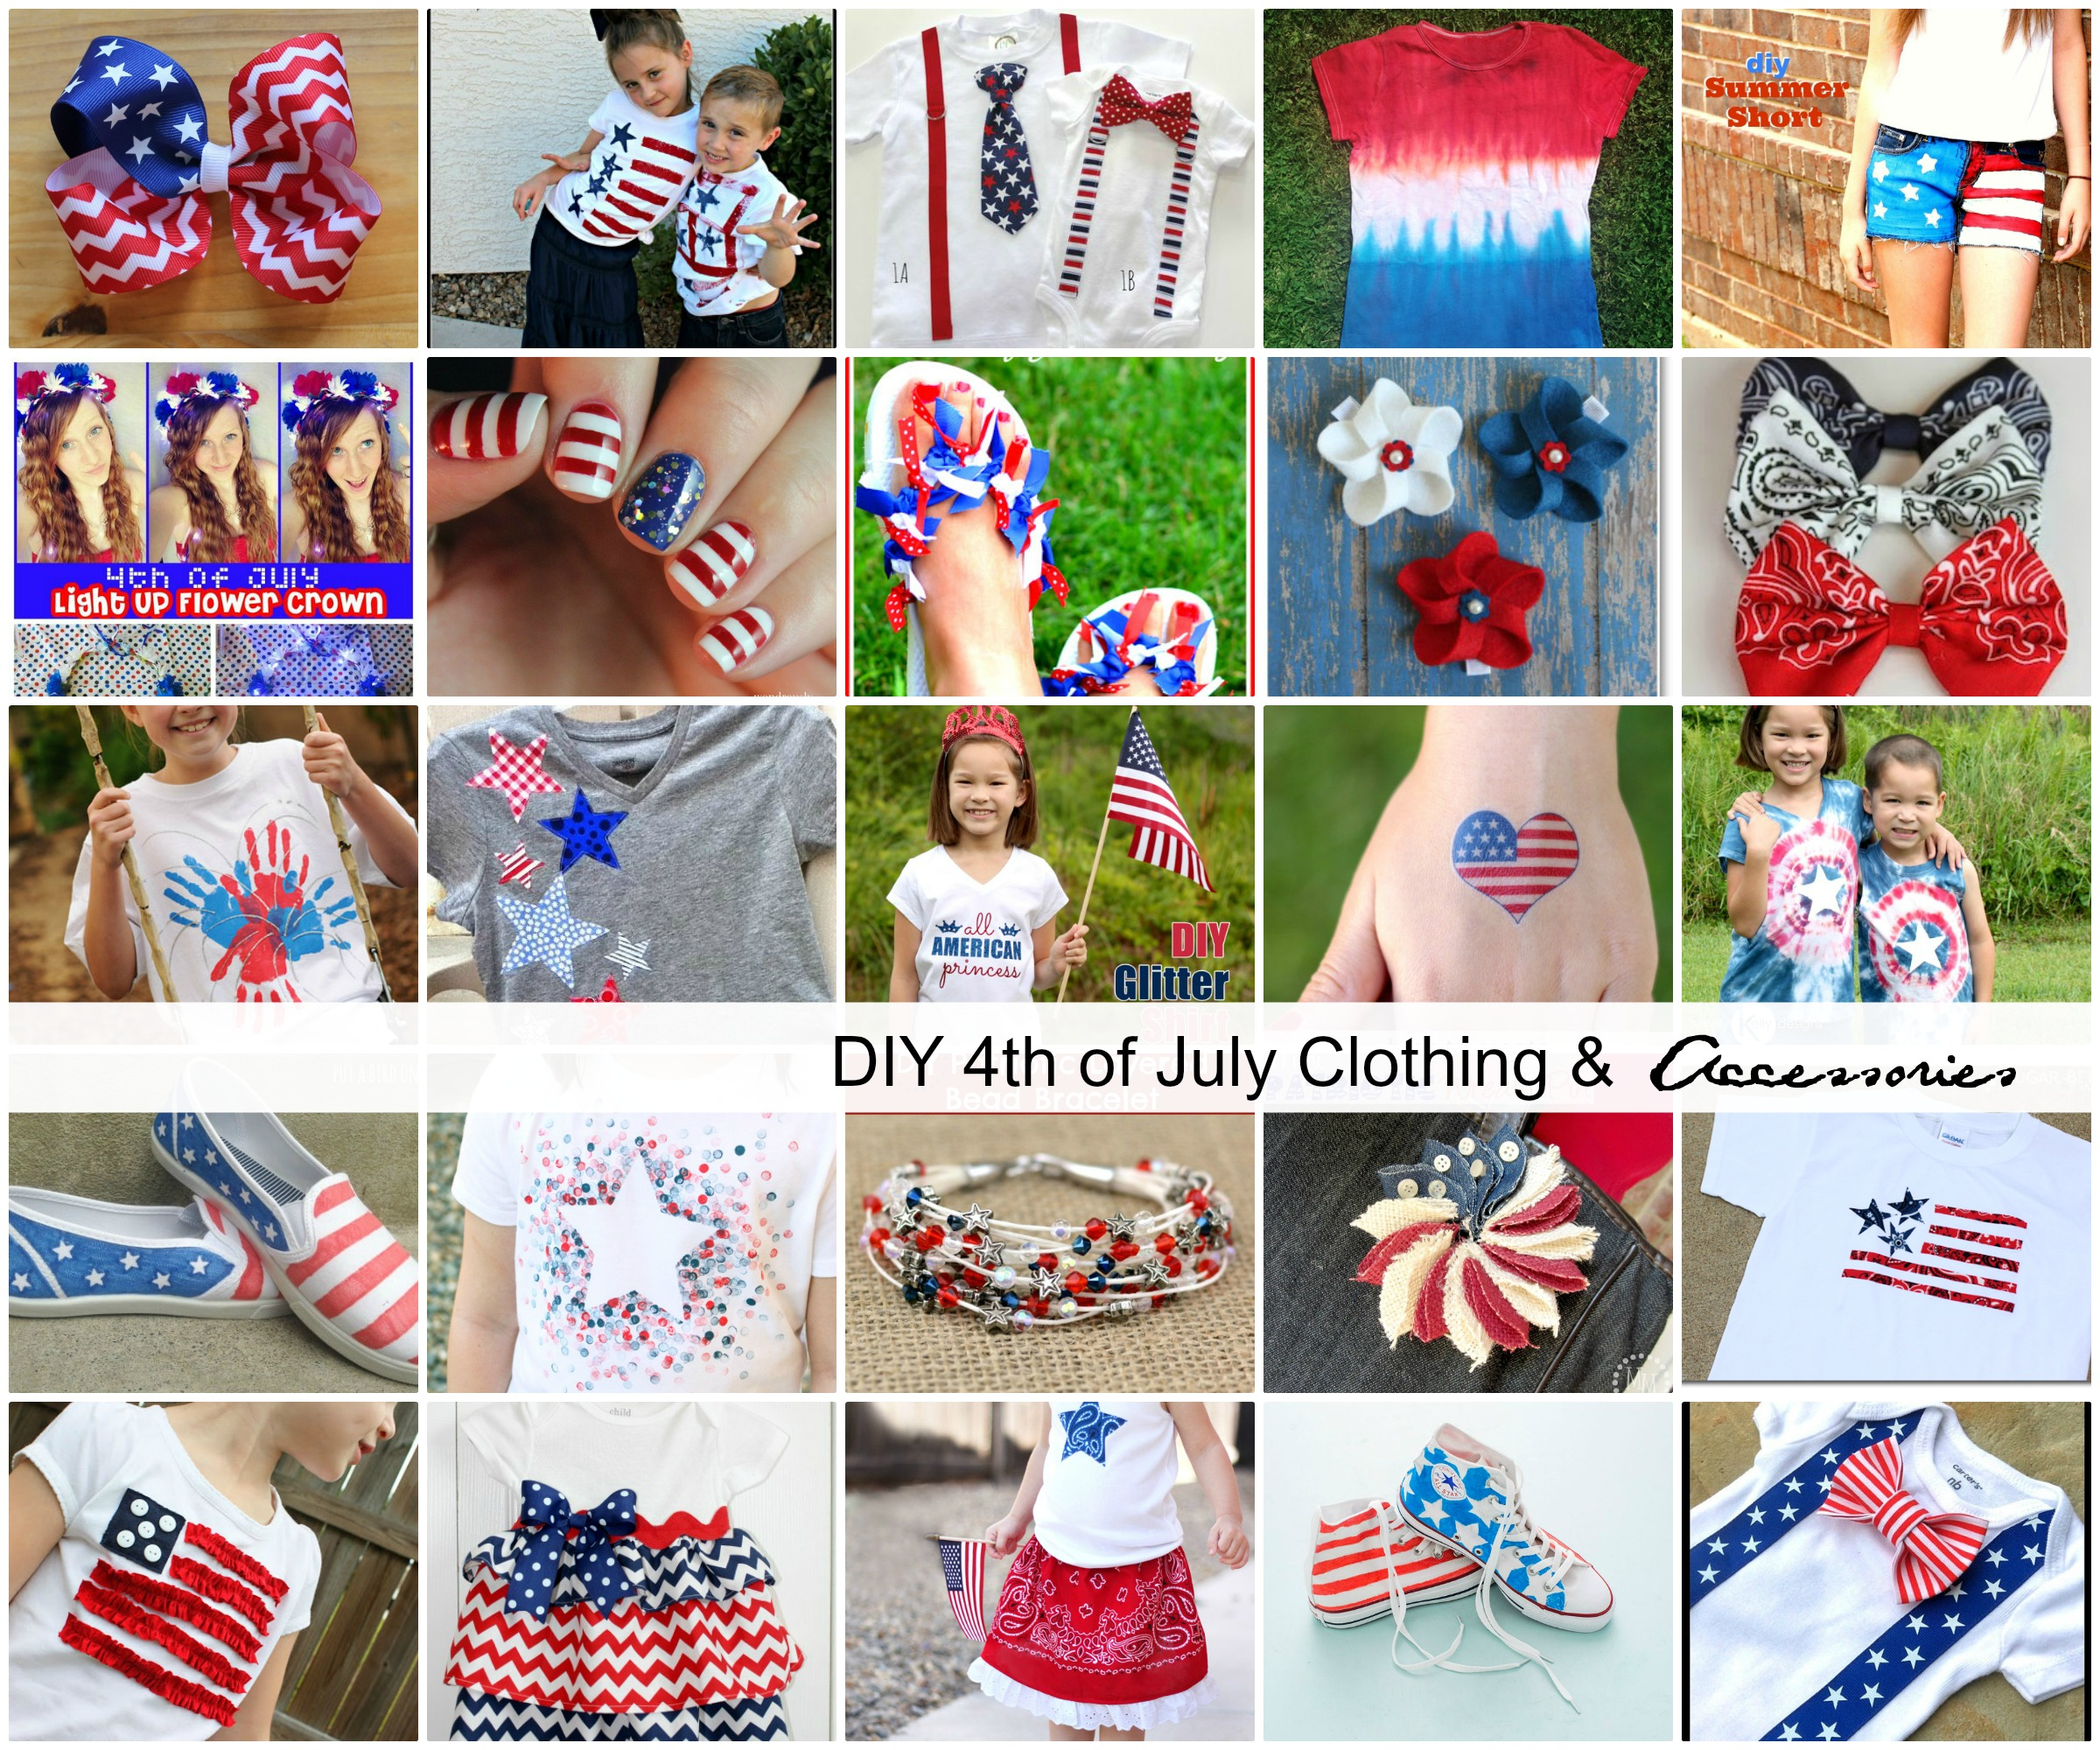 Fourth-of-July-Clothing-Accessories-1